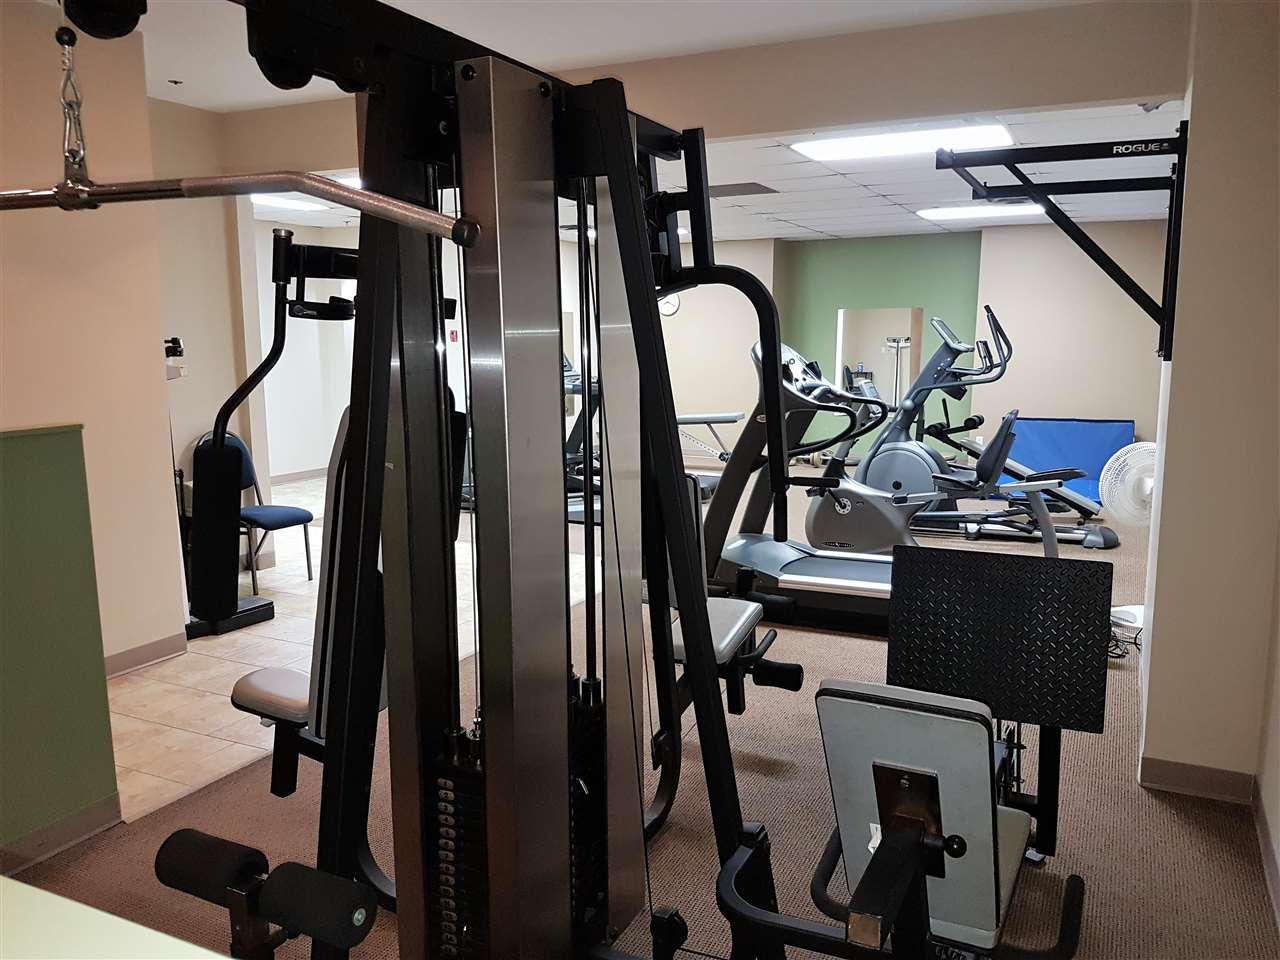 This is only one angle of this exercise room. New quality equipment, sauna and shower faculties for your use. Save on the cost of a gym membership!